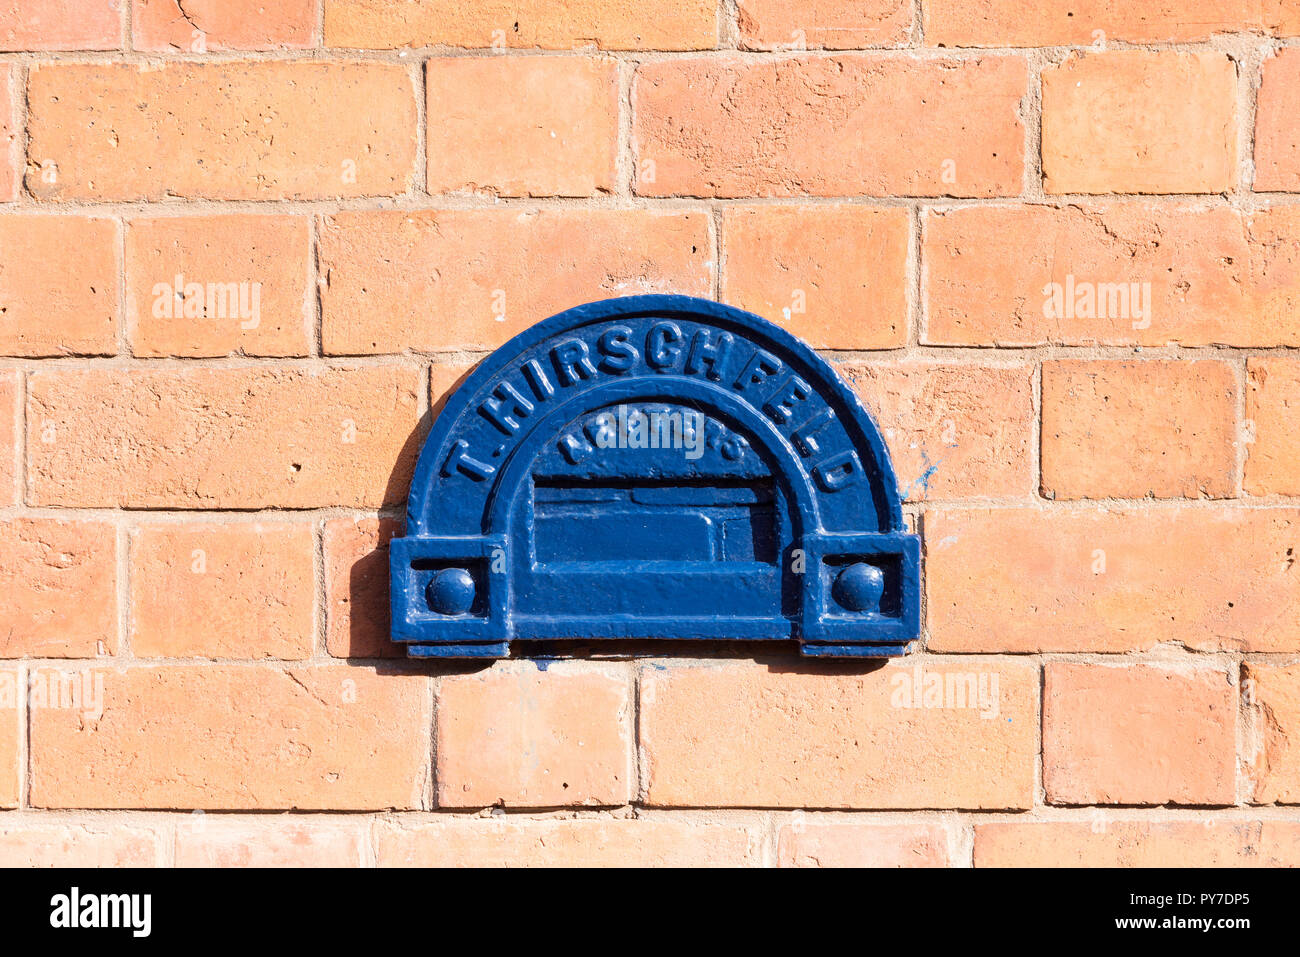 One of the distinctive Georgian letterboxes made for jewellers in Birmingham's Jewellery Quarter as secure portals for precious metal and stones - Stock Image